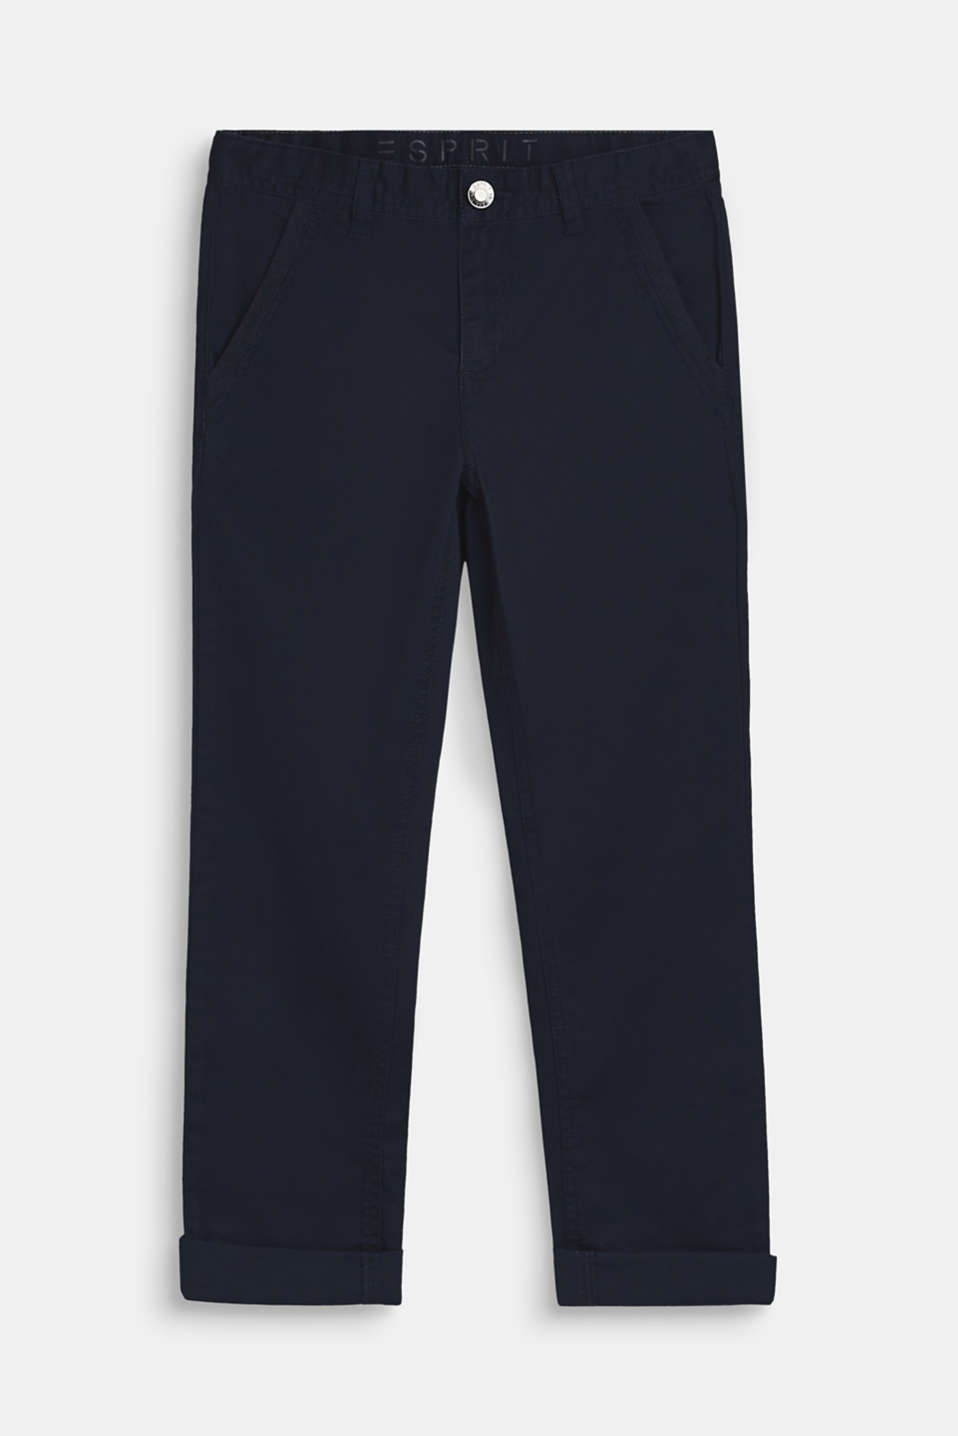 Esprit - Stretch cotton trousers with an adjustable waistband